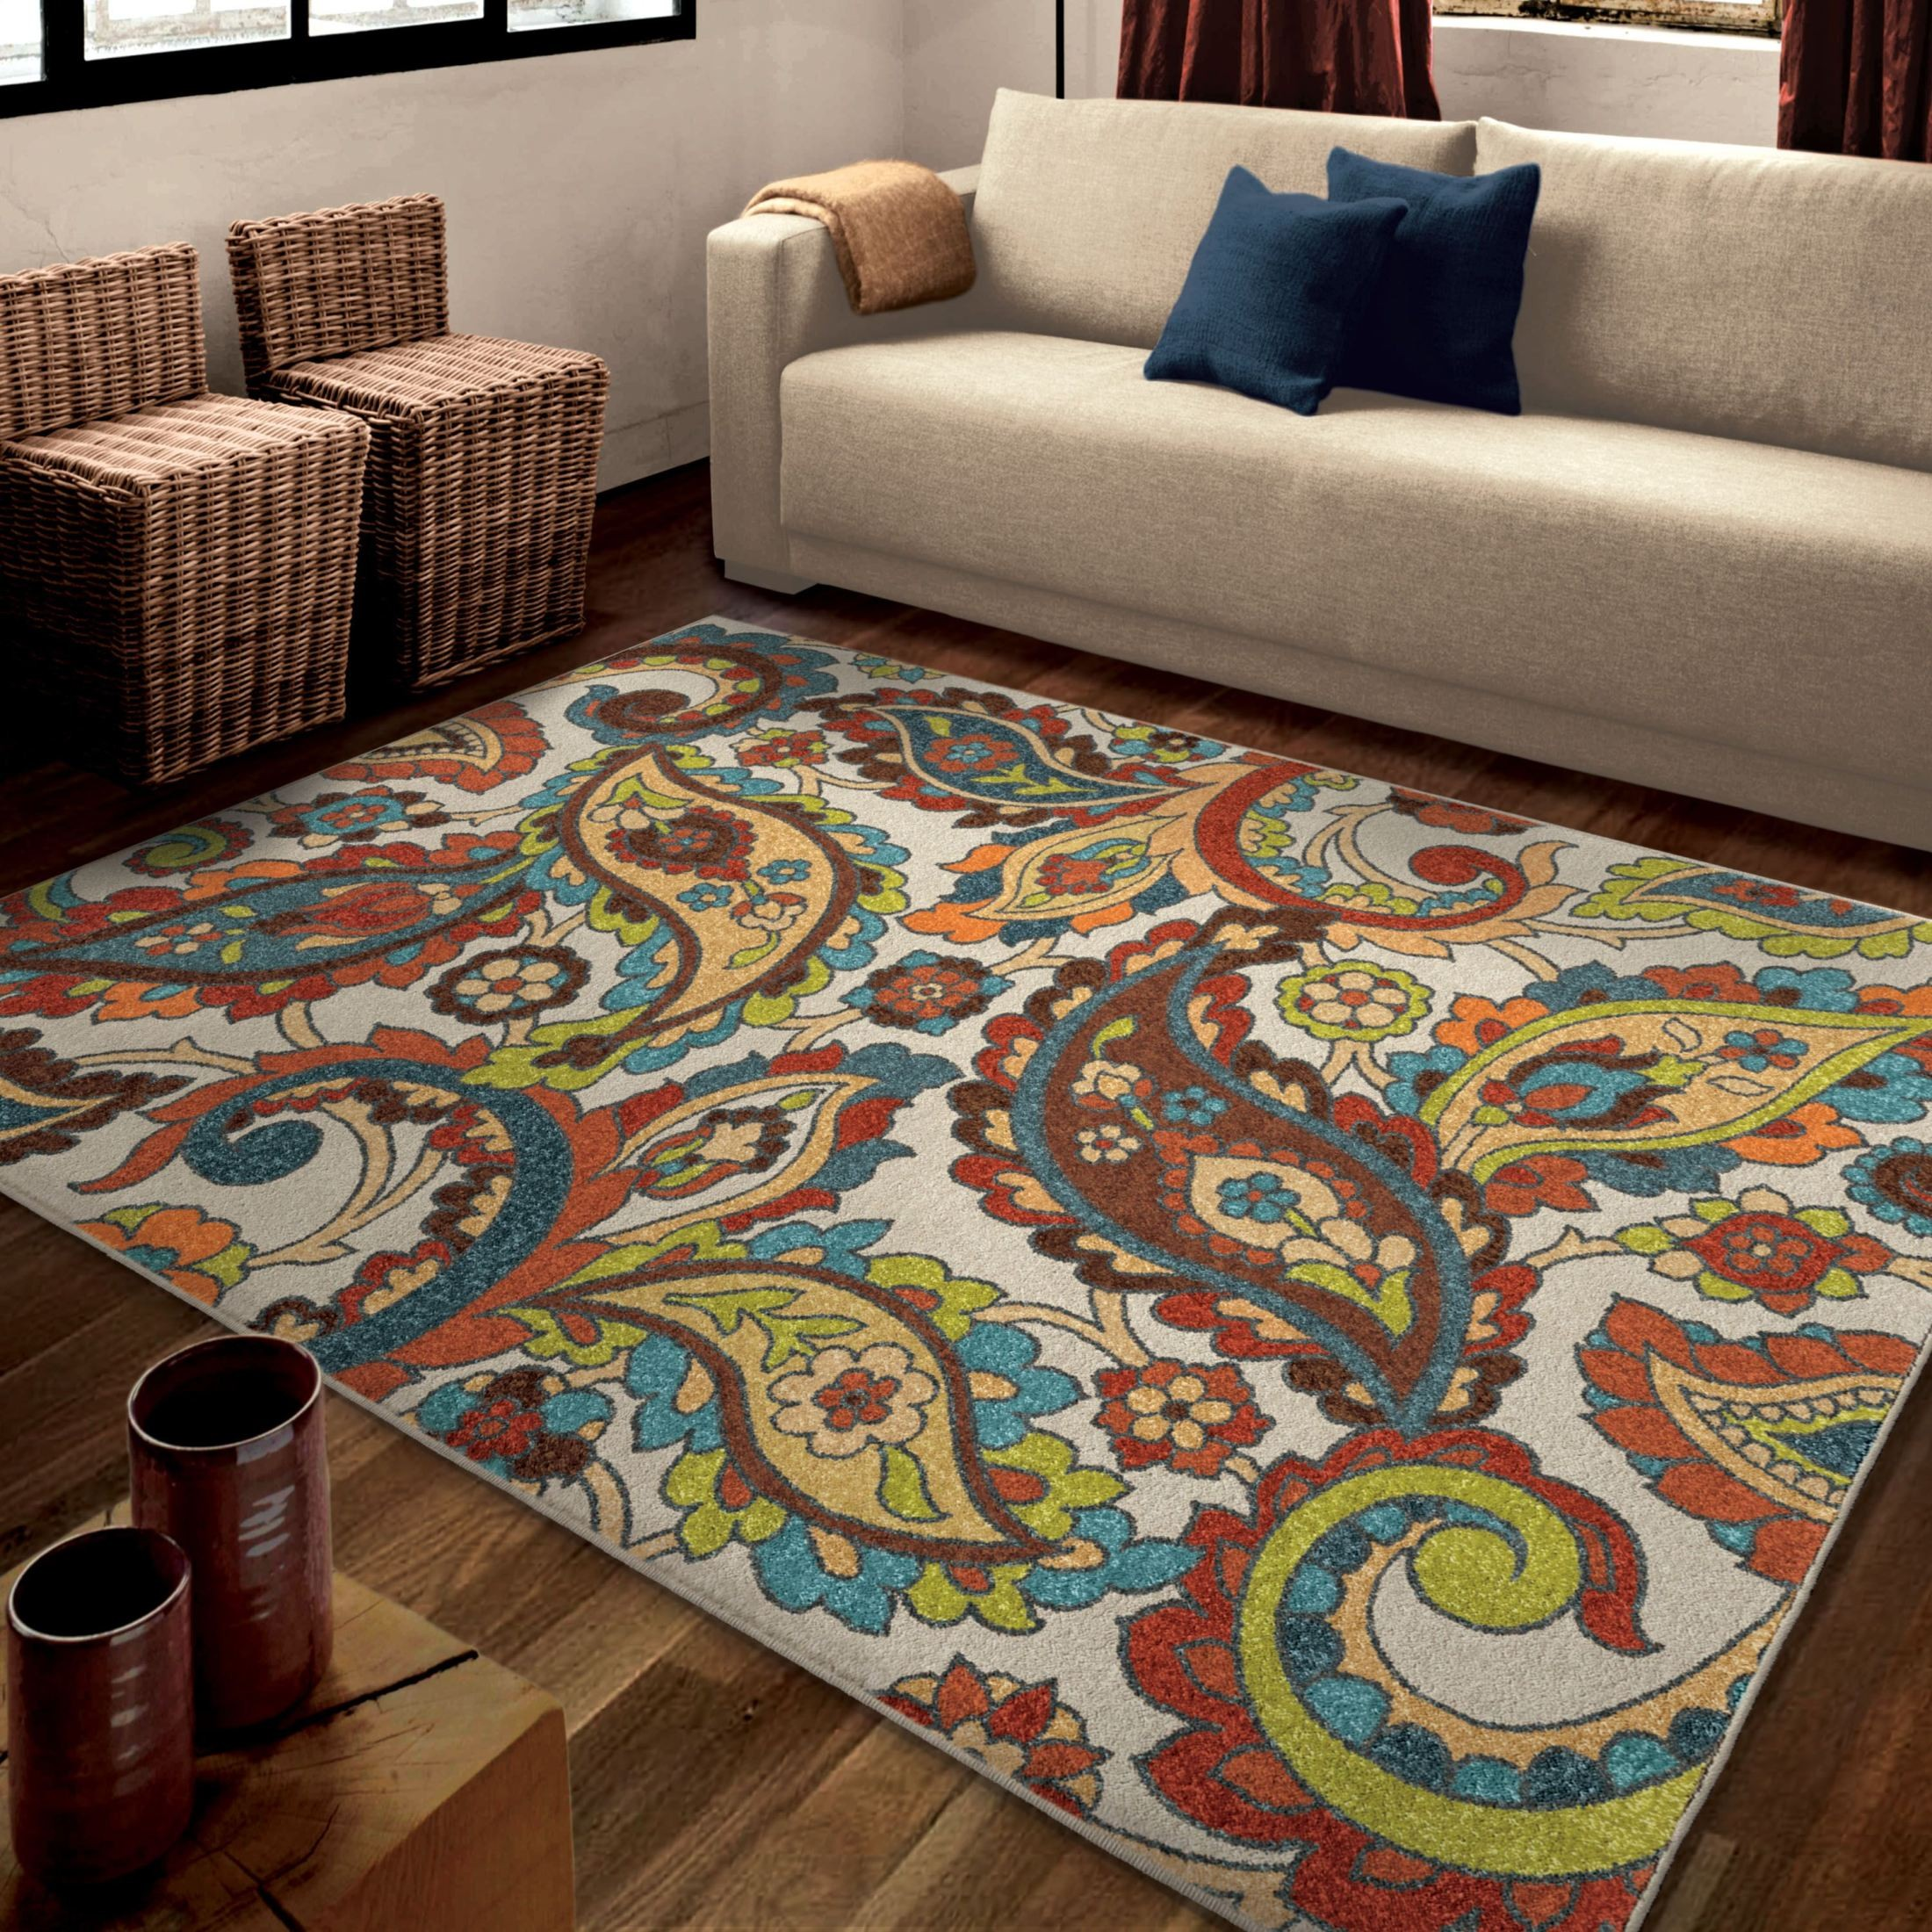 orian rugs bright color paisley ginger garden multi area small rug 2829 5x8 orian rugs. Black Bedroom Furniture Sets. Home Design Ideas